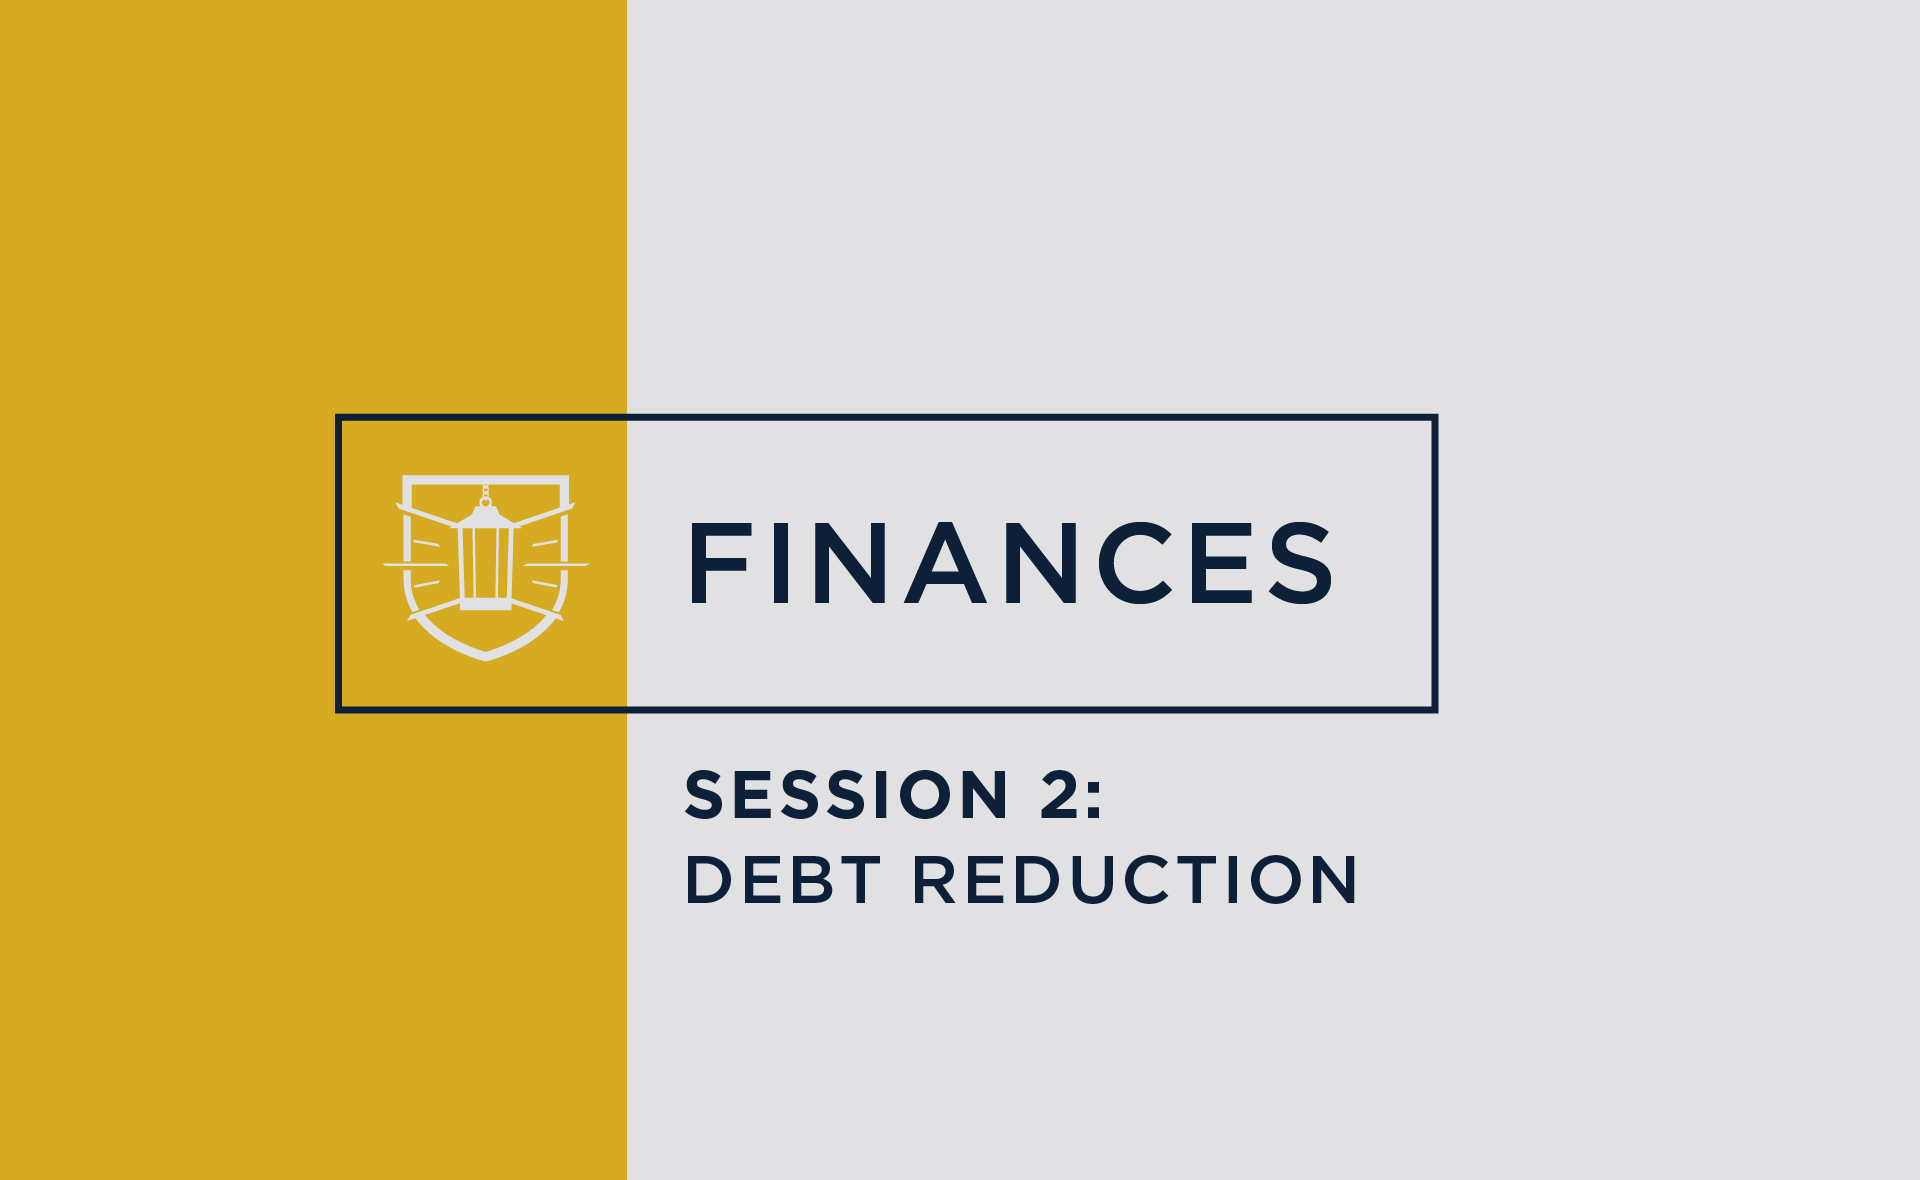 Finances 2: Debt Reduction